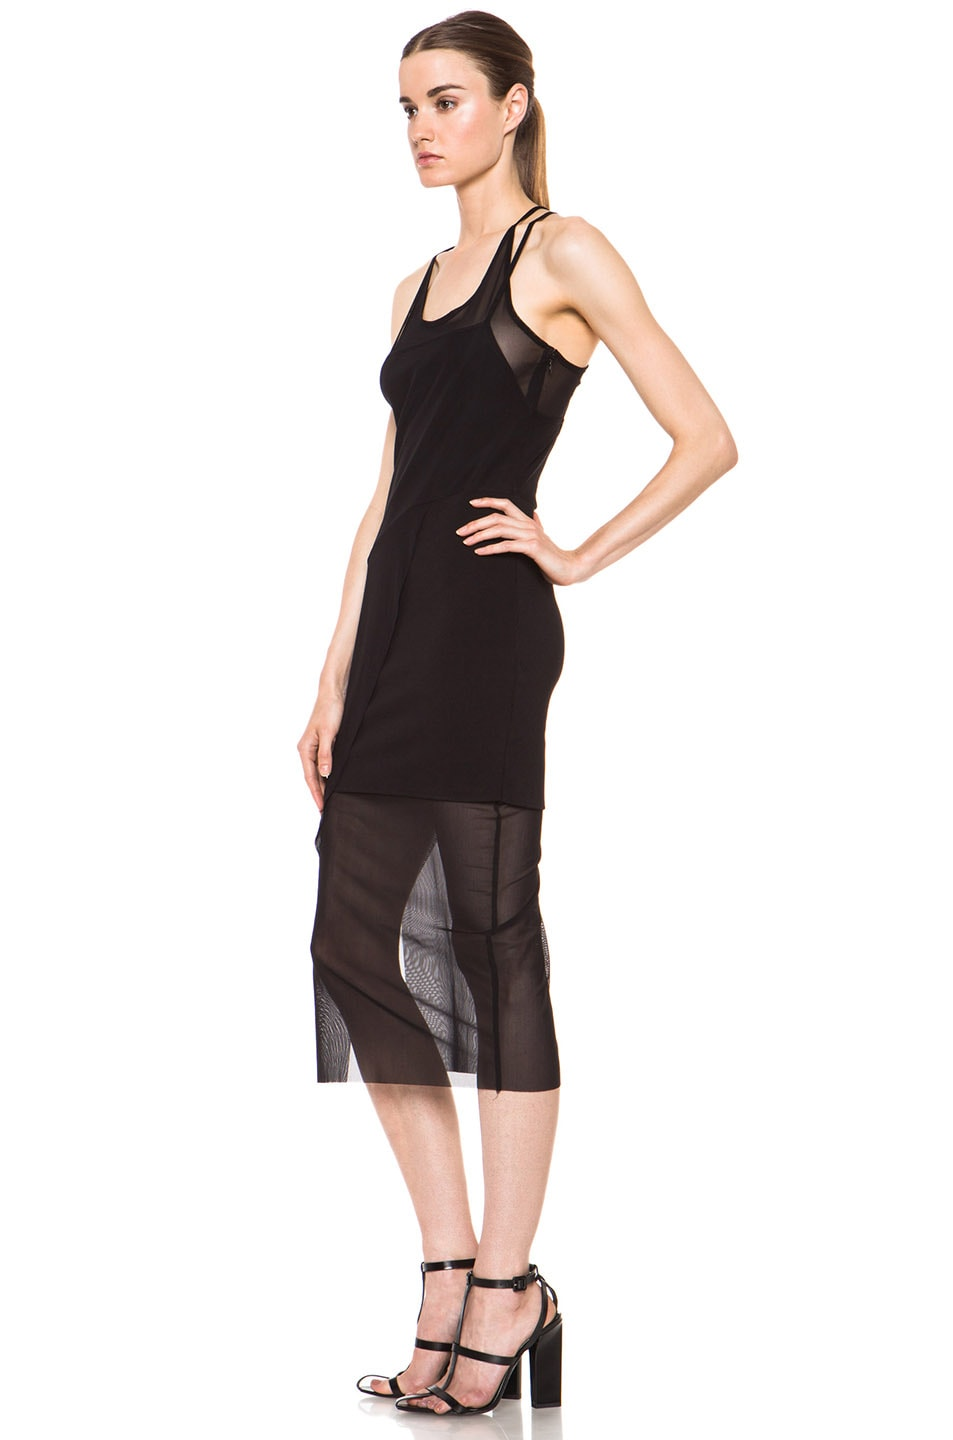 Image 2 of Kimberly Ovitz Kimek Polyamide-Blend Dress in Black